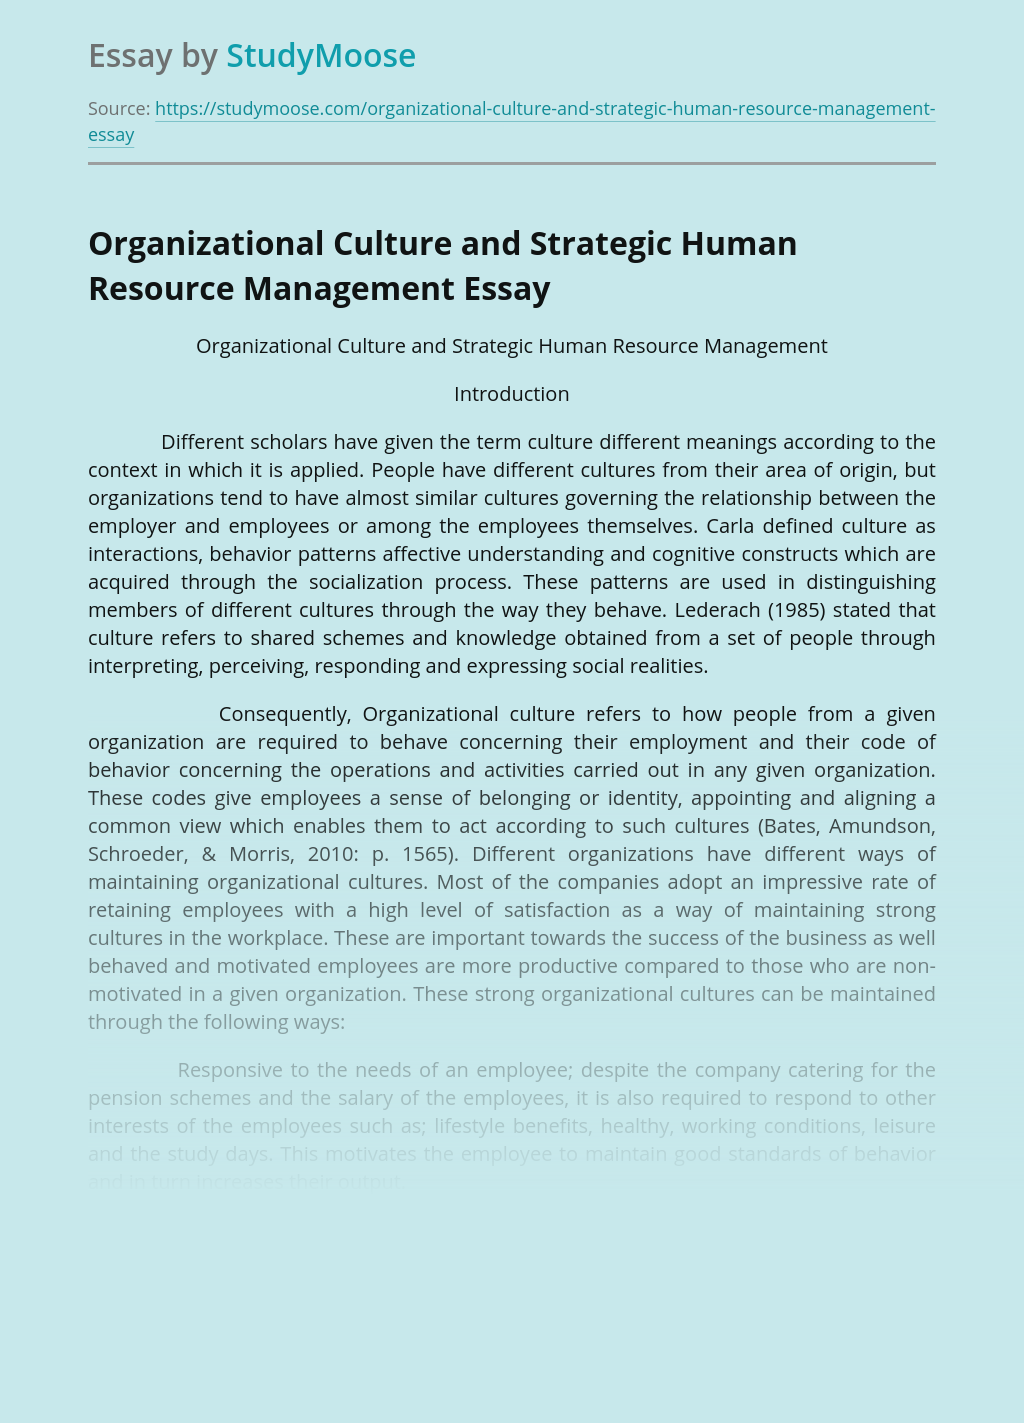 Organizational Culture and Strategic Human Resource Management